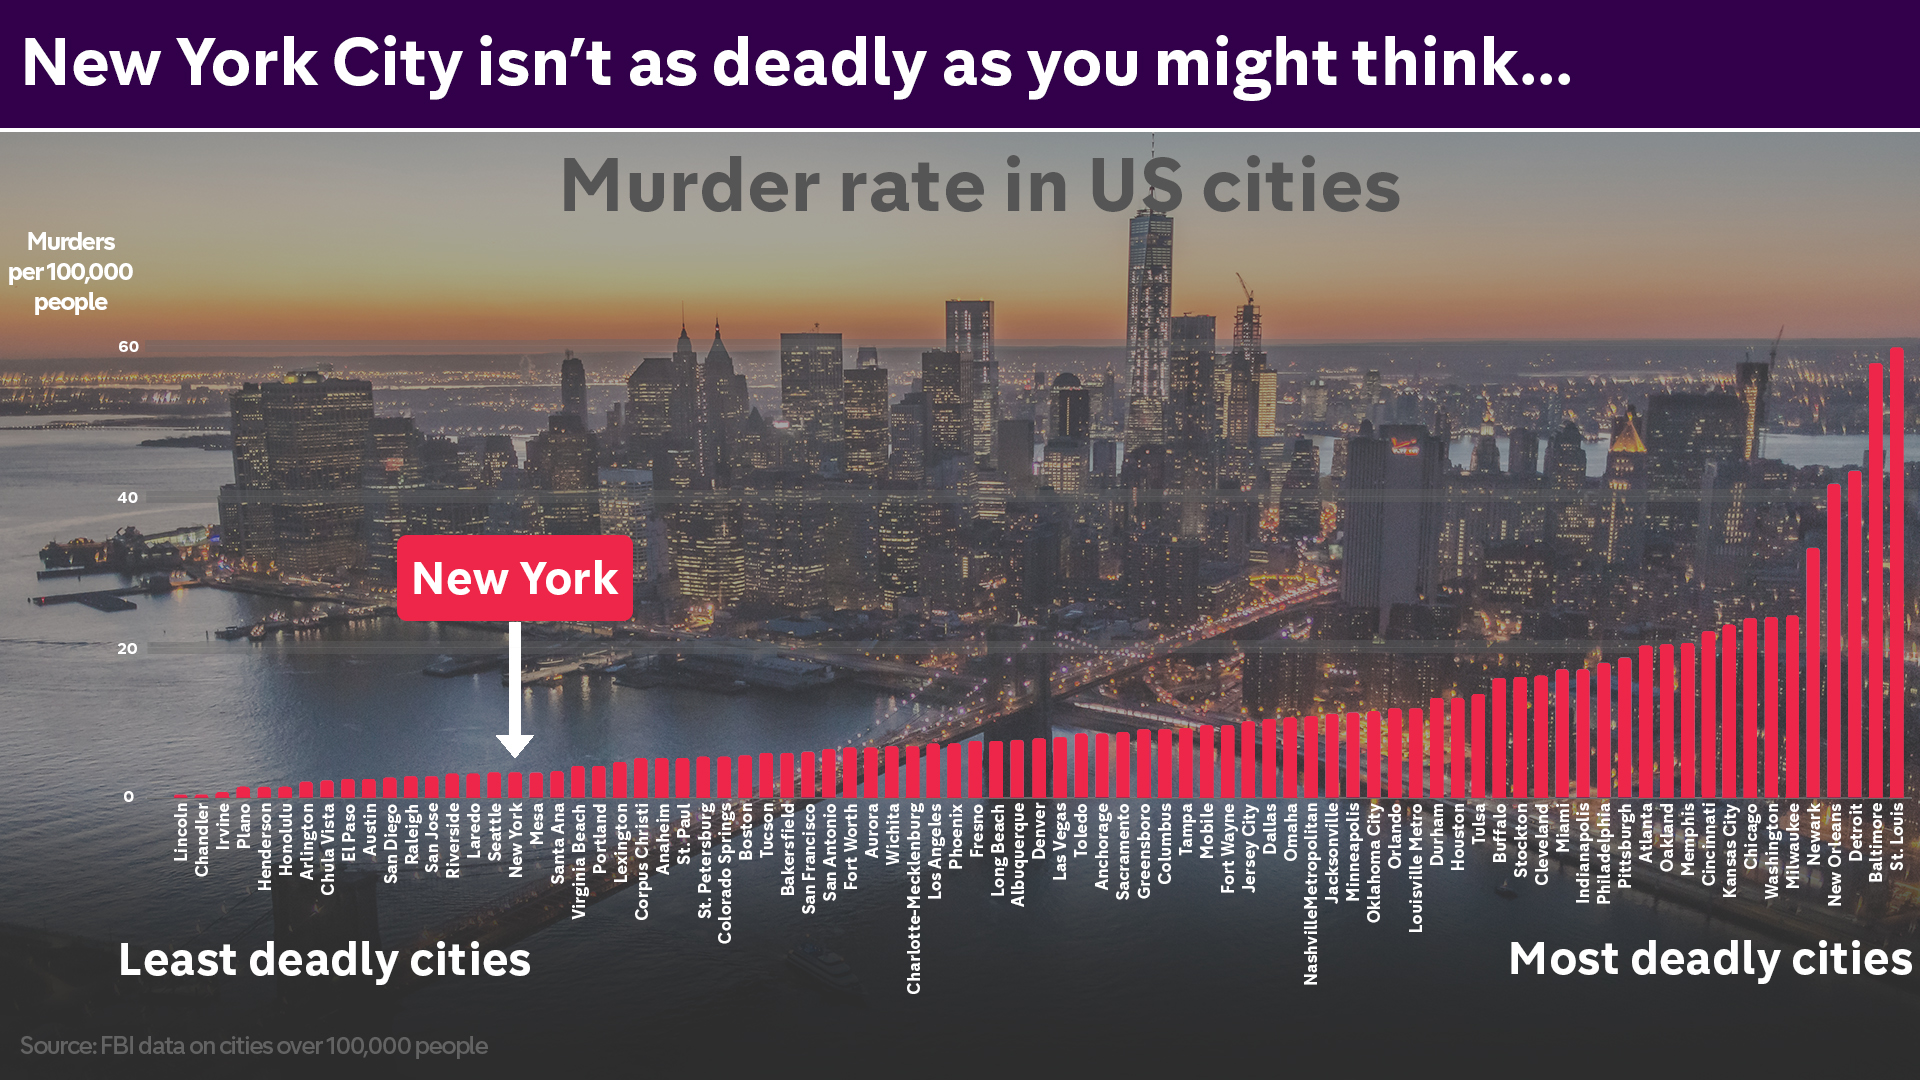 FactCheck: Is London really deadlier than New York